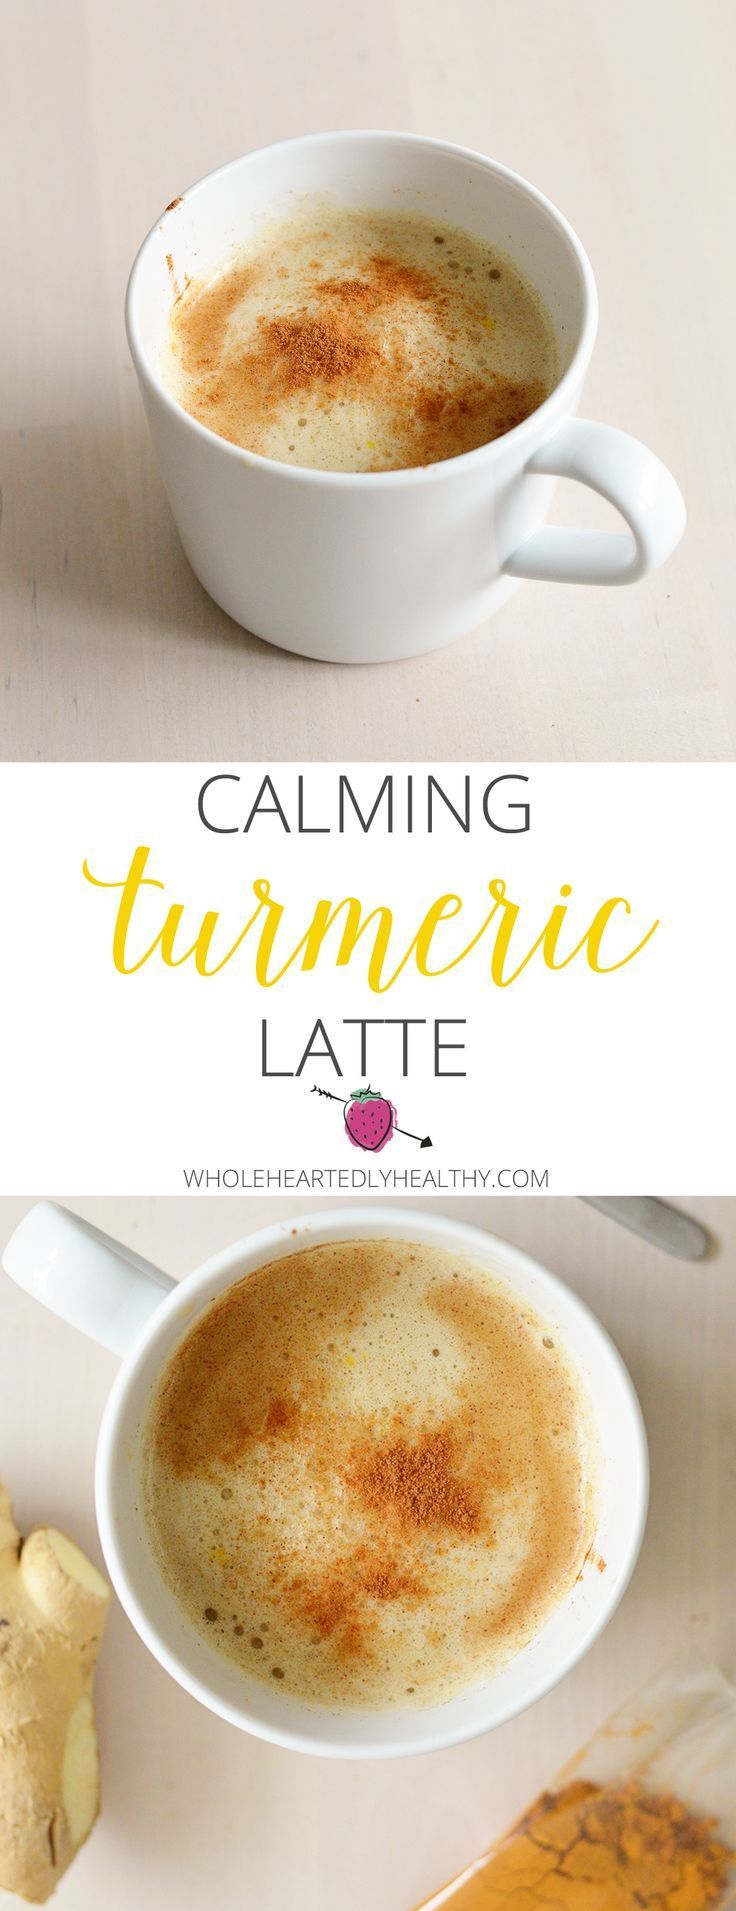 The latte you can have before bed! Delicious calming Turmeric Latte with anti inflammatory, anti ageing and blood sugar balancing health benefits.